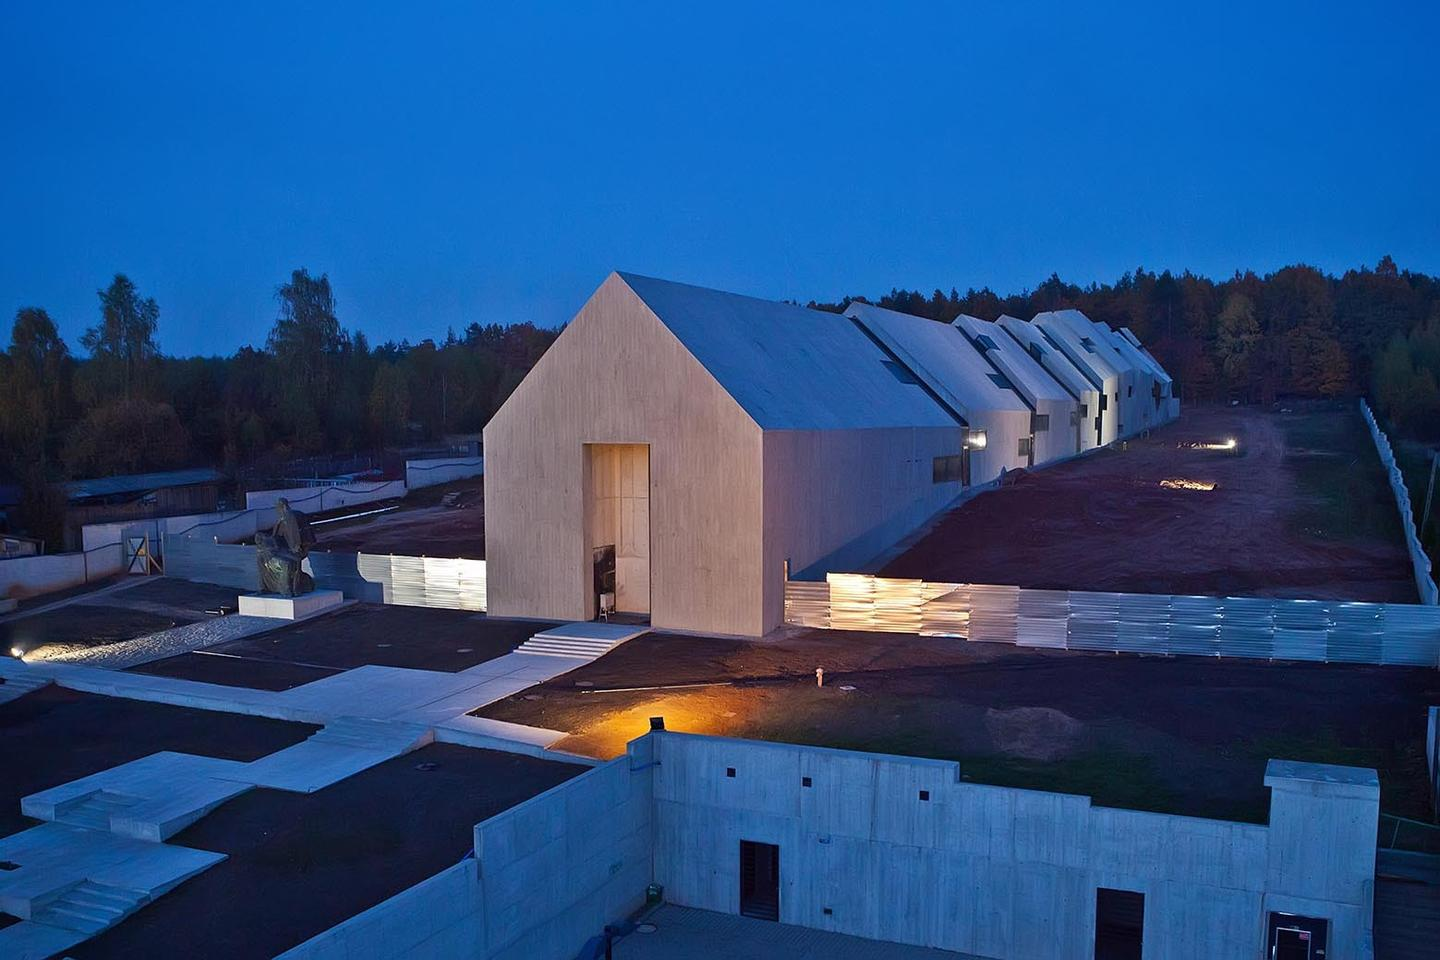 The project was commissioned by the Kielce Region Countryside Museum